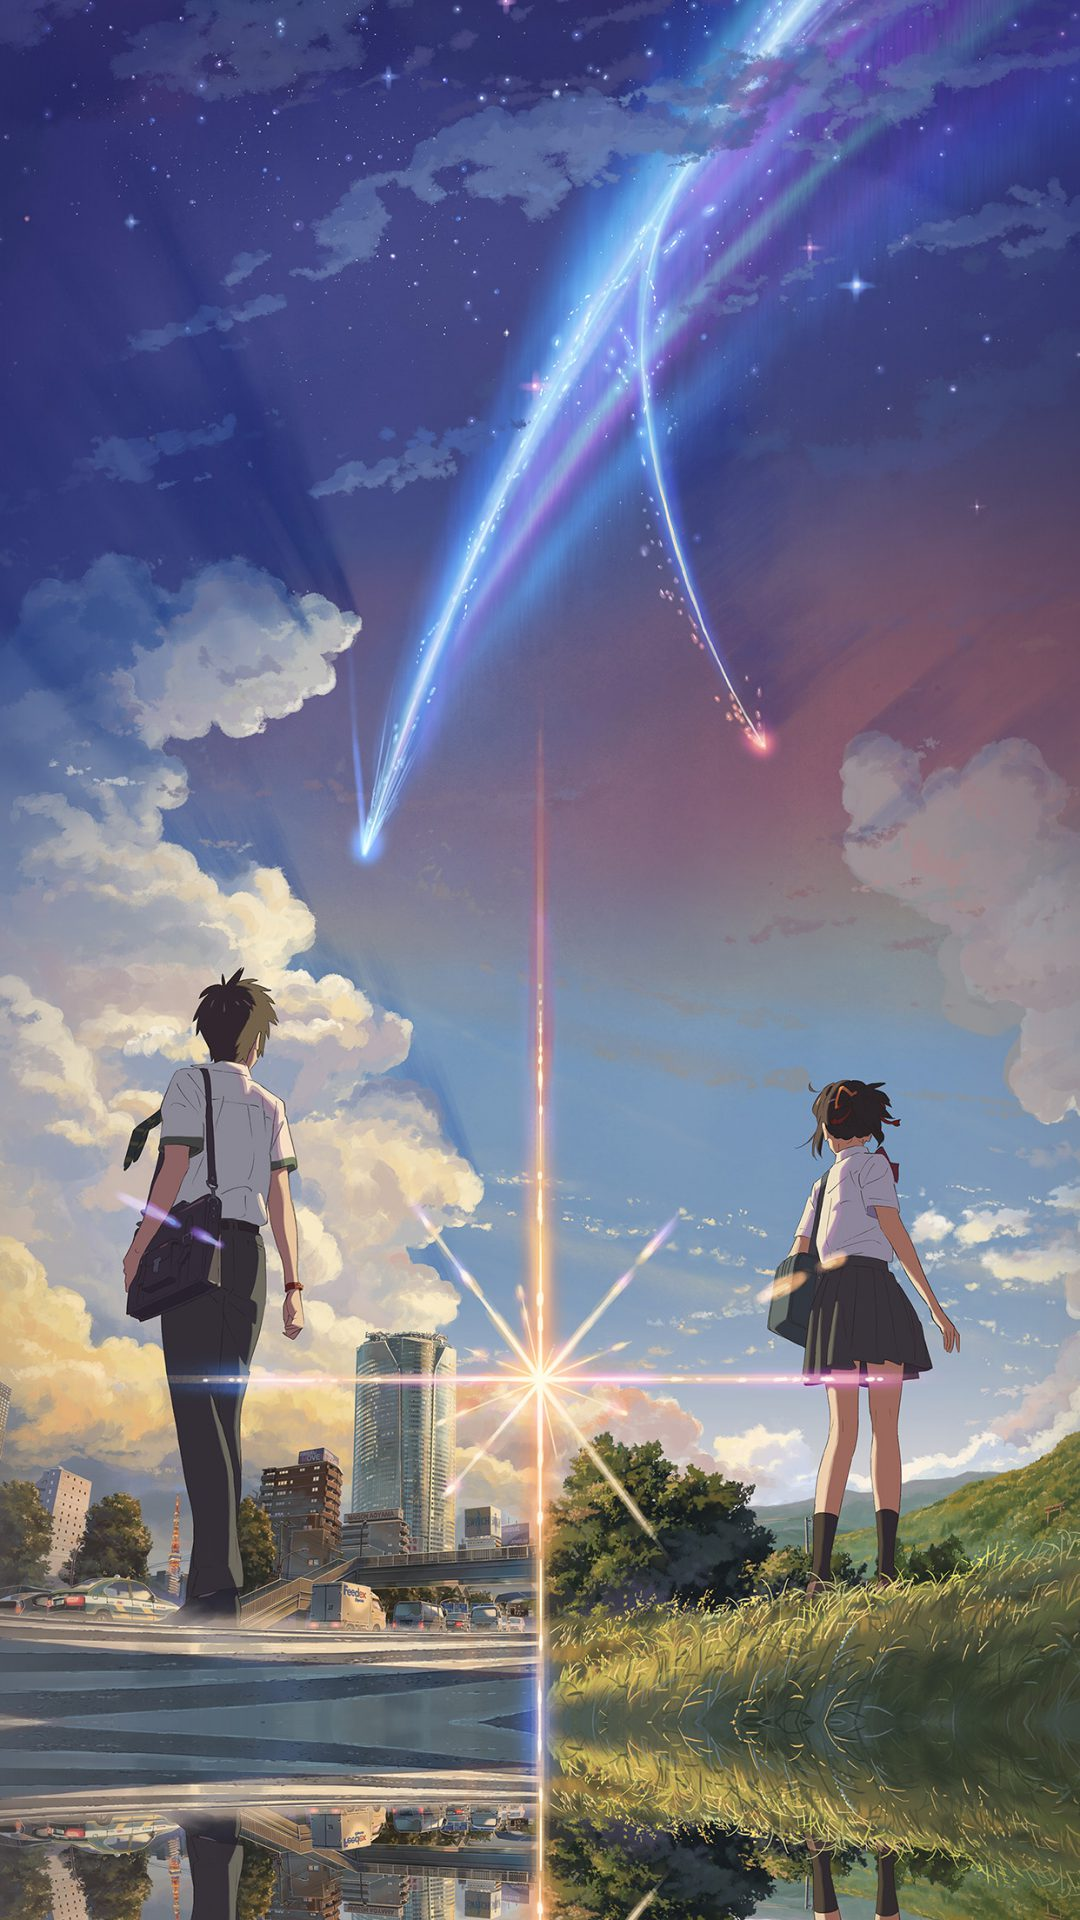 Anime Film Yourname Sky Illustration Art Wallpapers For Iphone